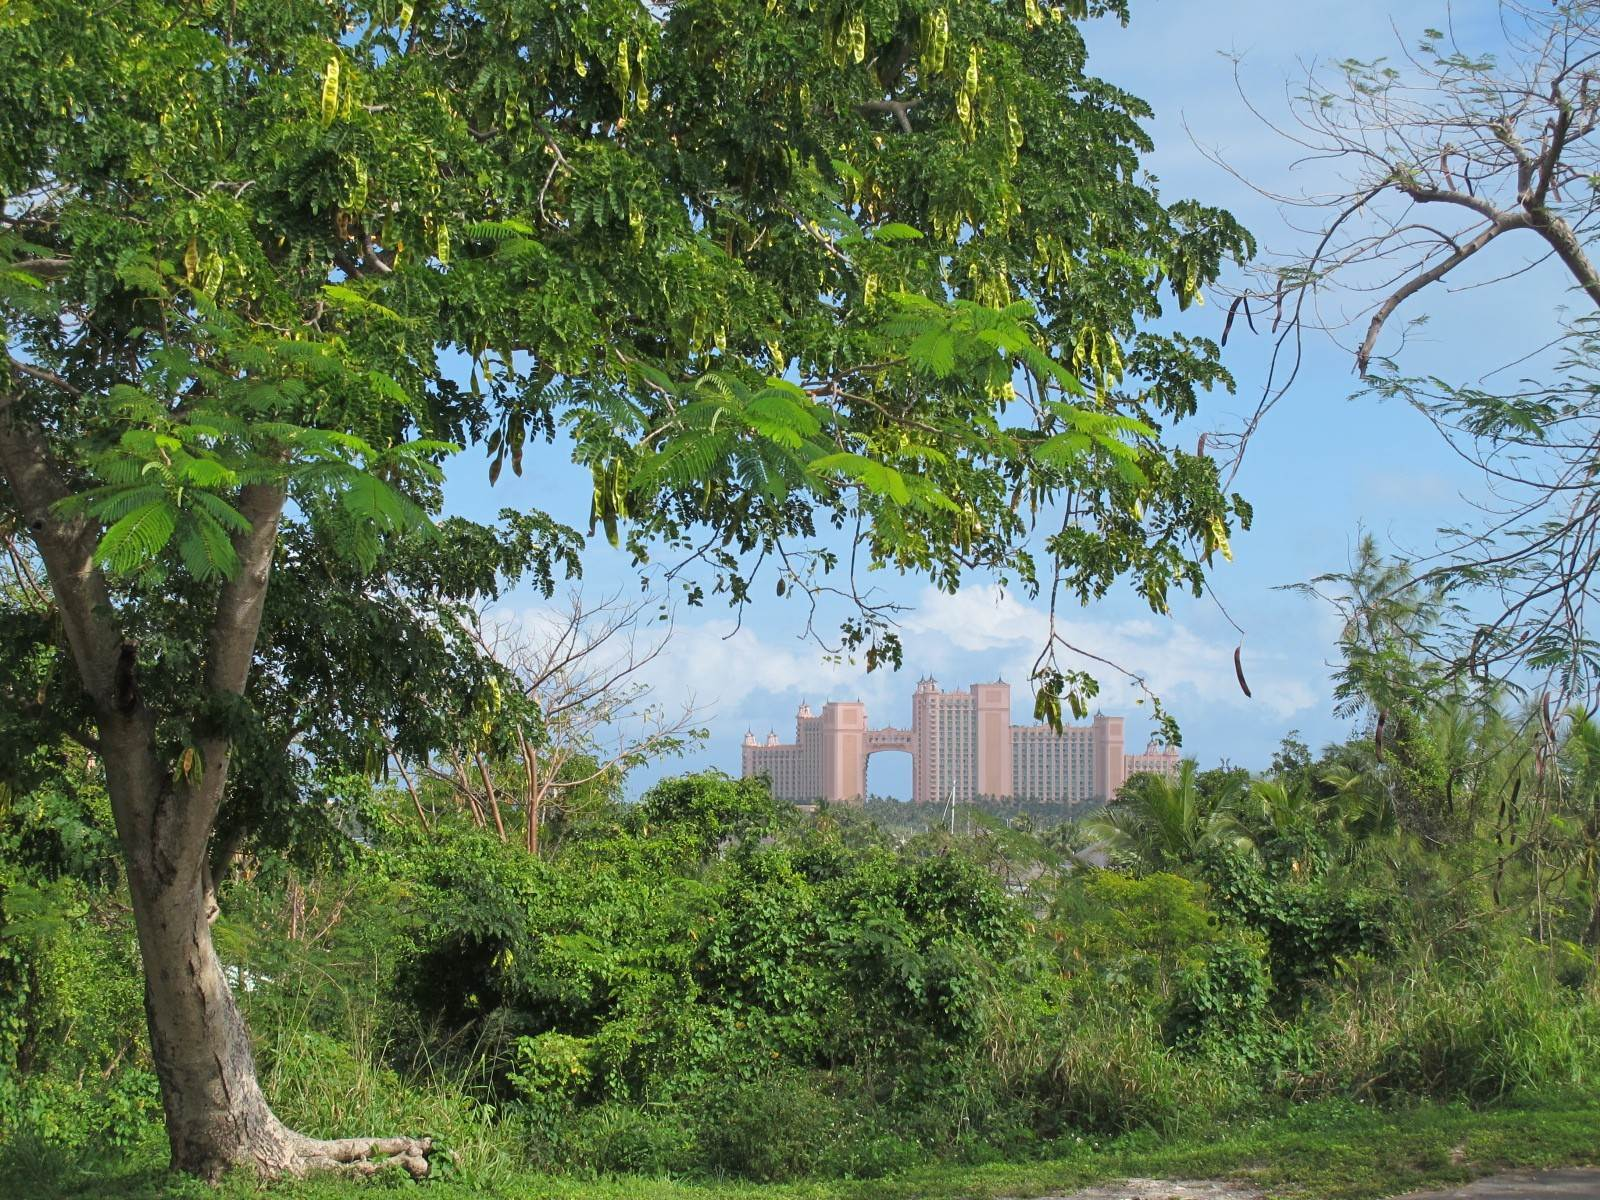 Terreno por un Venta en Prime Commercial Land for Sale in Central Location Centreville, Nueva Providencia / Nassau, Bahamas